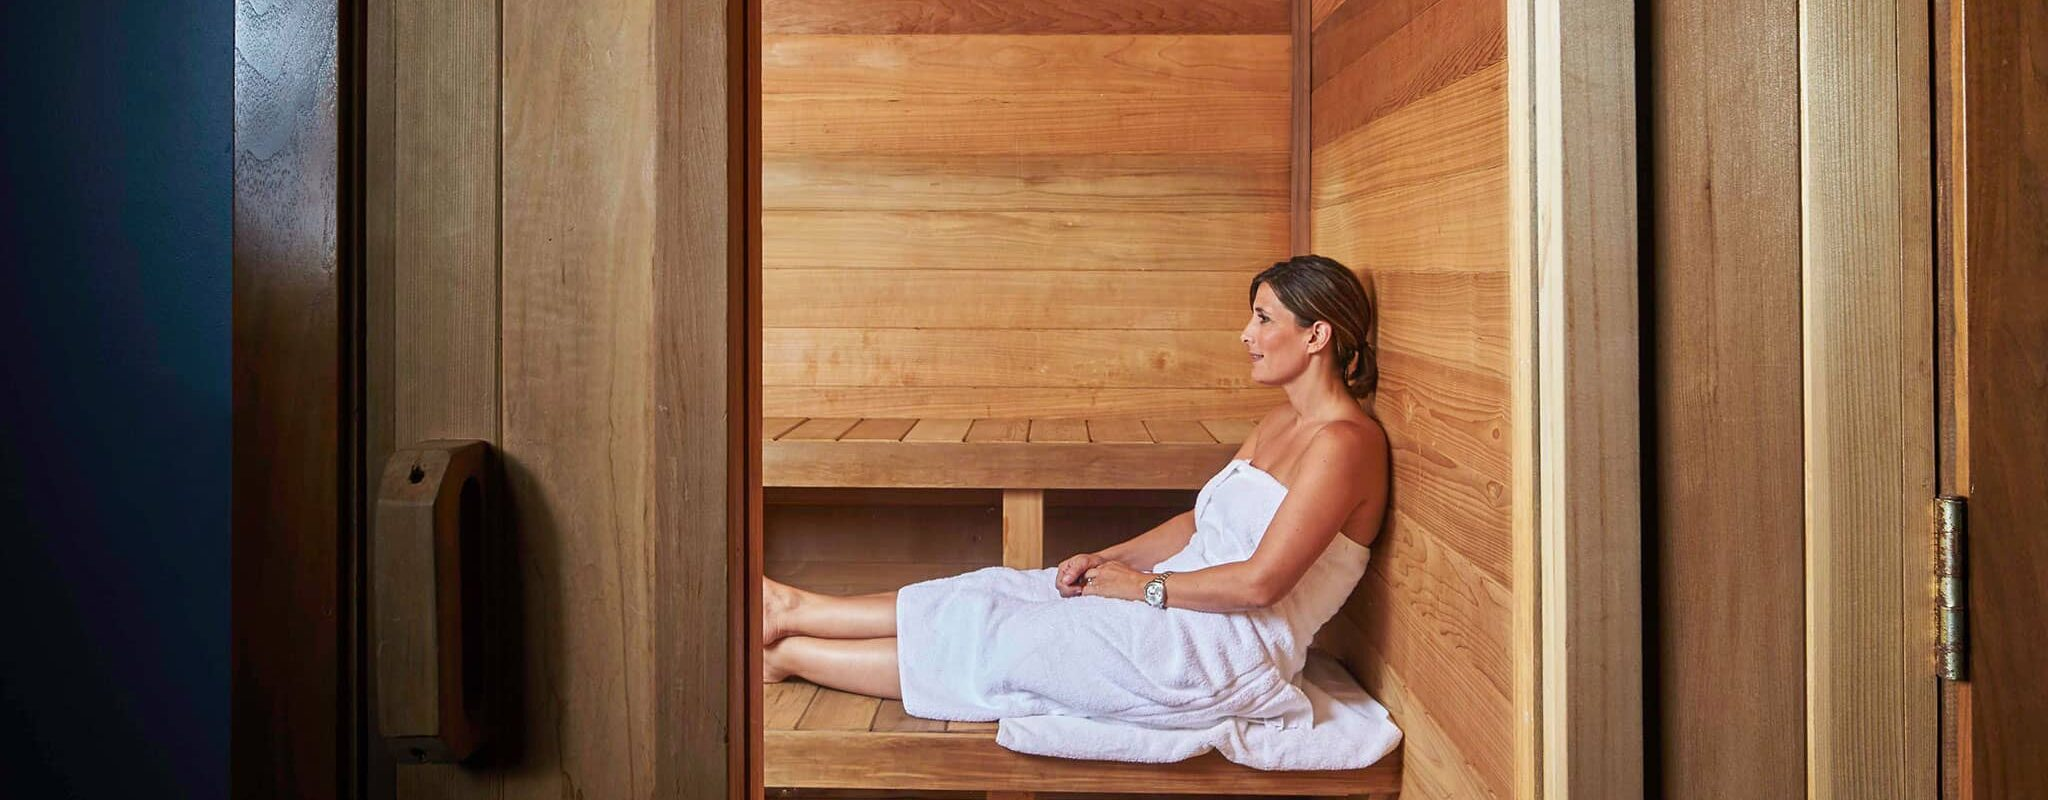 Relax in the sauna.